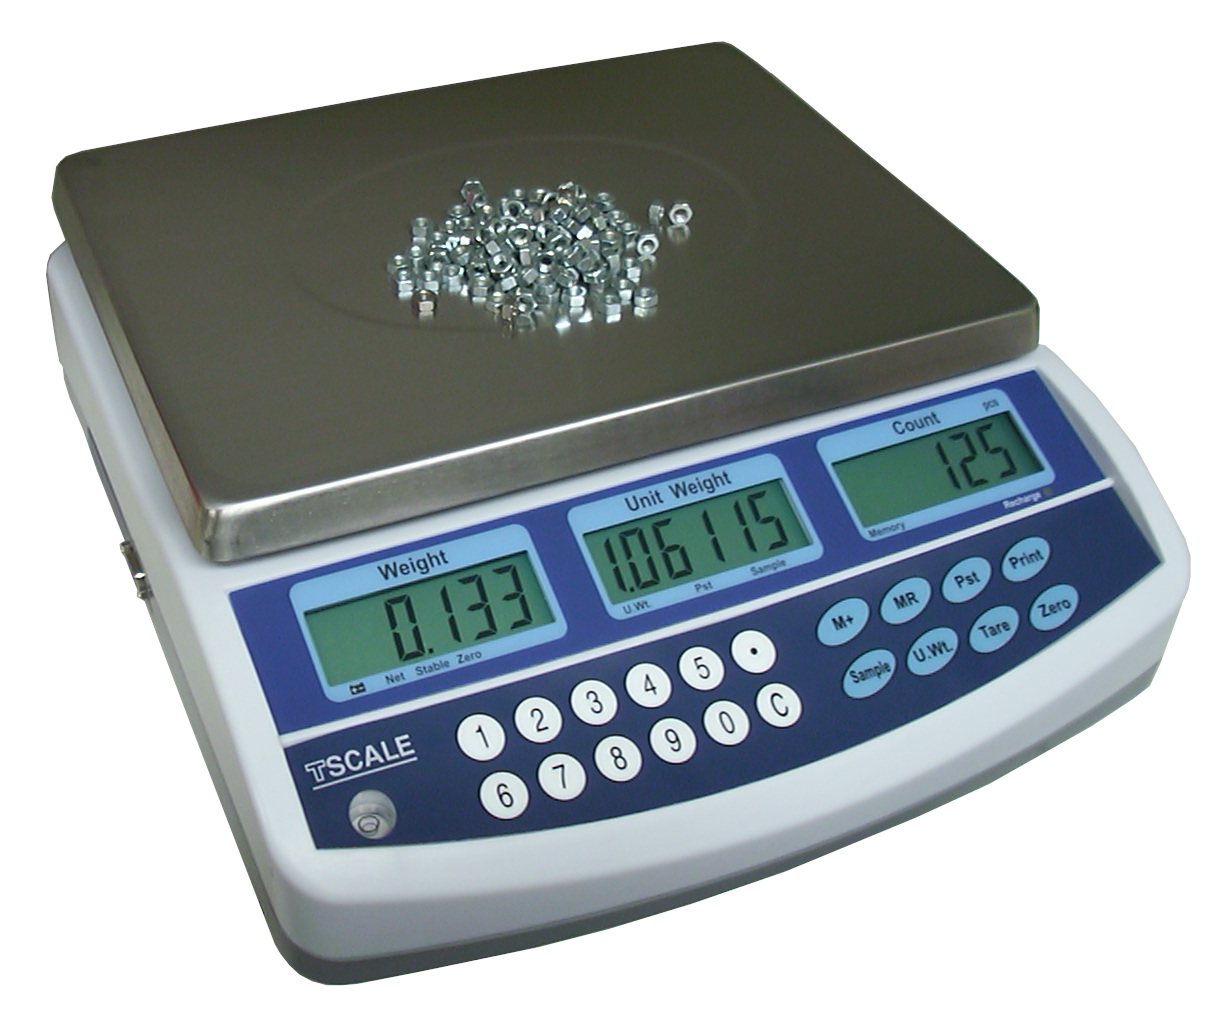 Weigh Counters from weighingscales.com